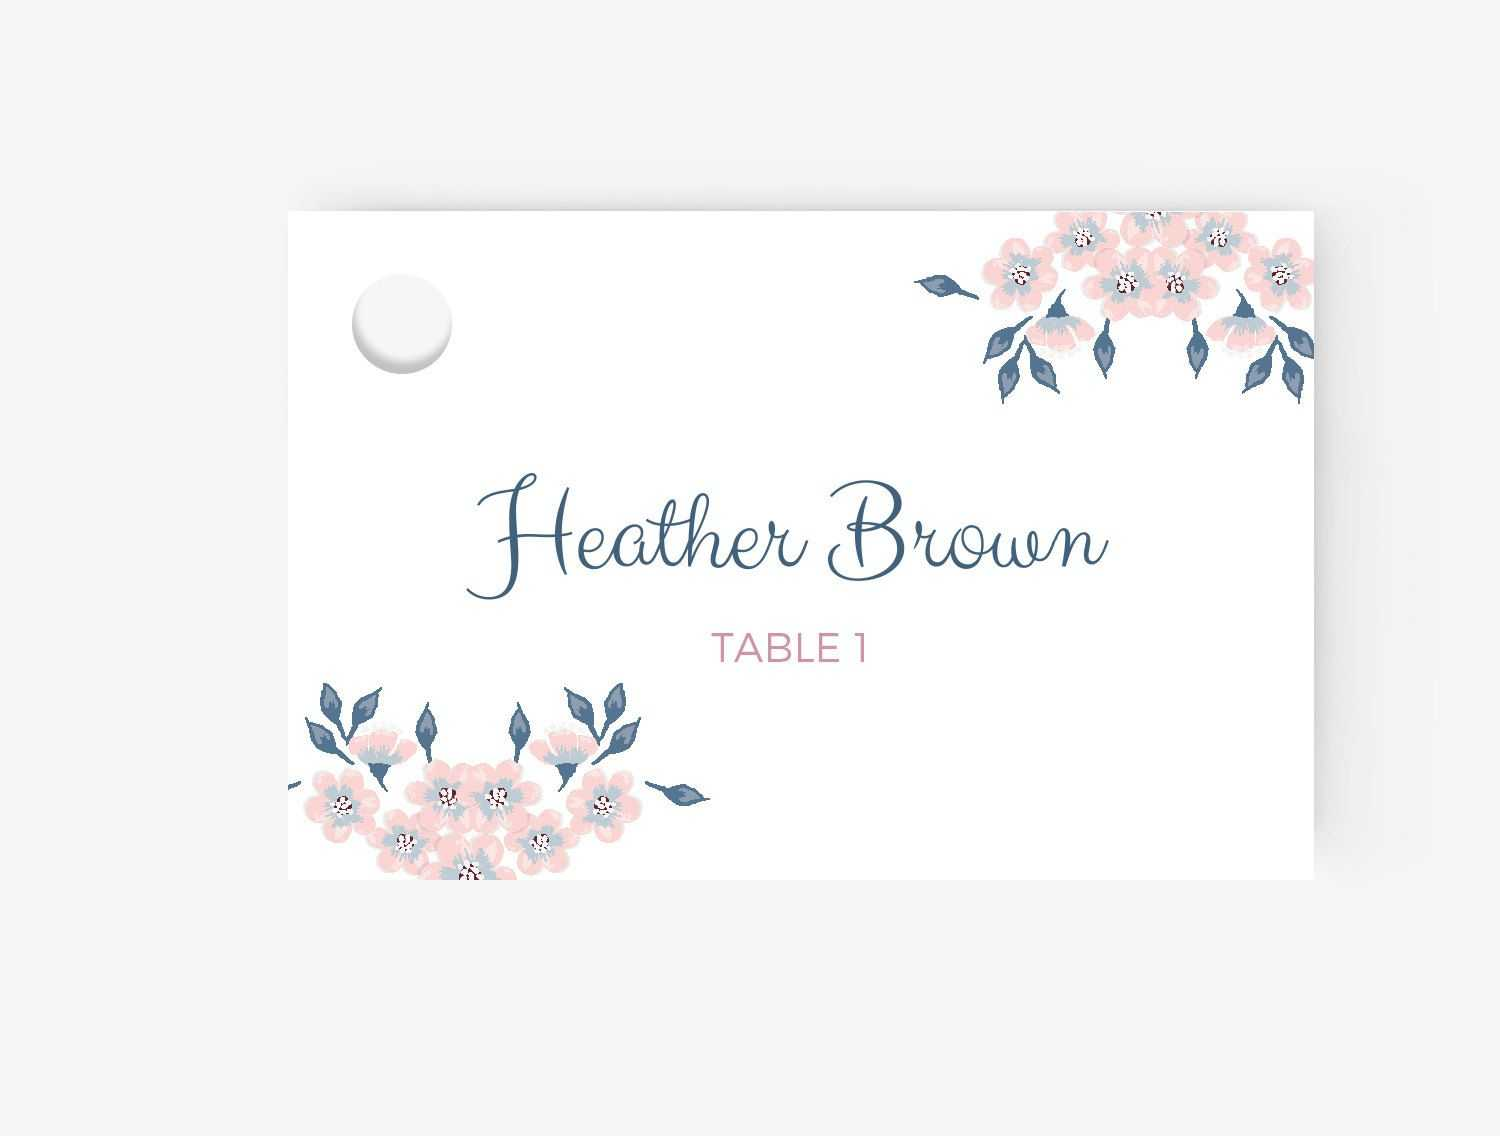 005 Free Place Card Template Ideas Cards Excellent Blank With Regard To Wedding Place Card Template Free Word